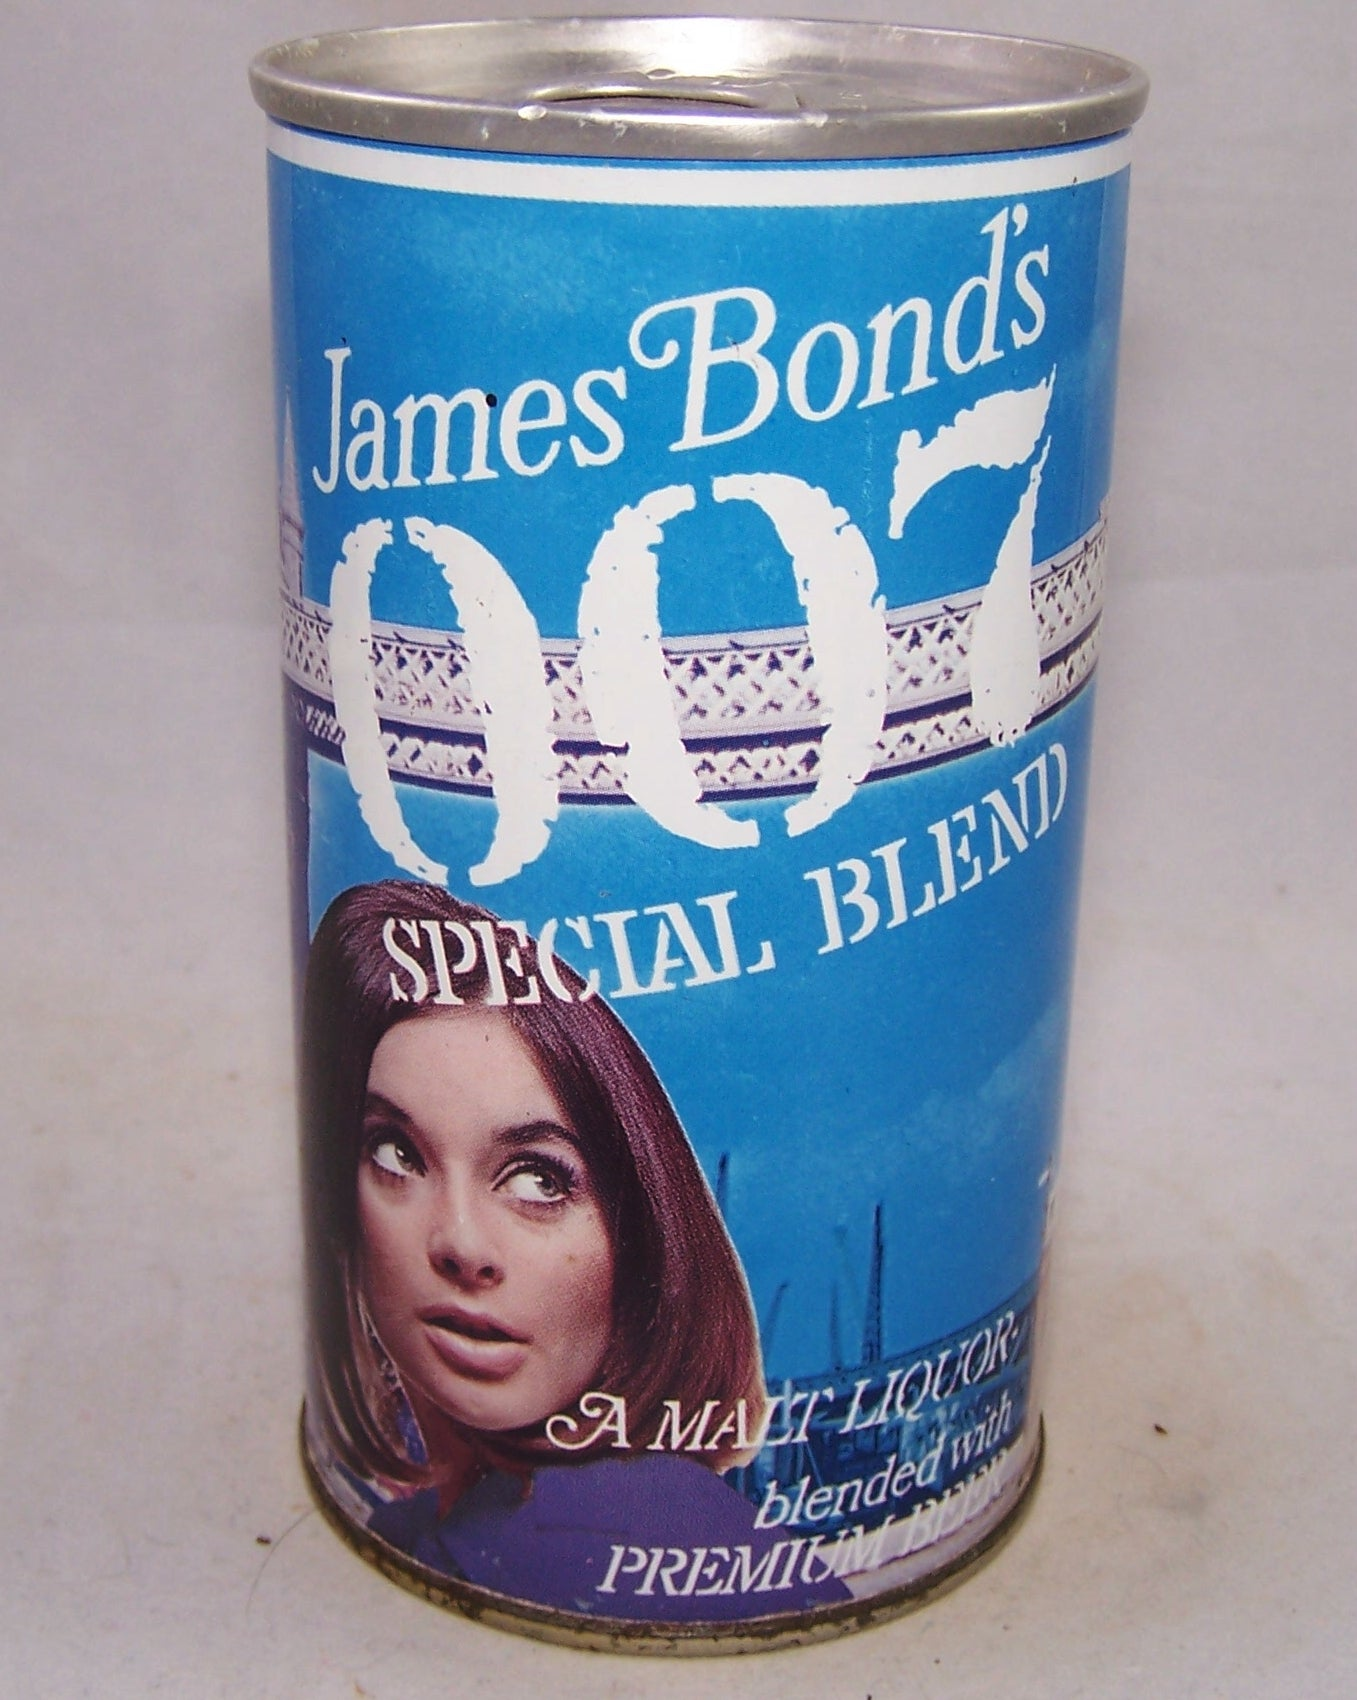 James Bond's 007 Special Blend, (White Stripe) USBC II 82-38, Grade A1+ Sold on 03/30/18